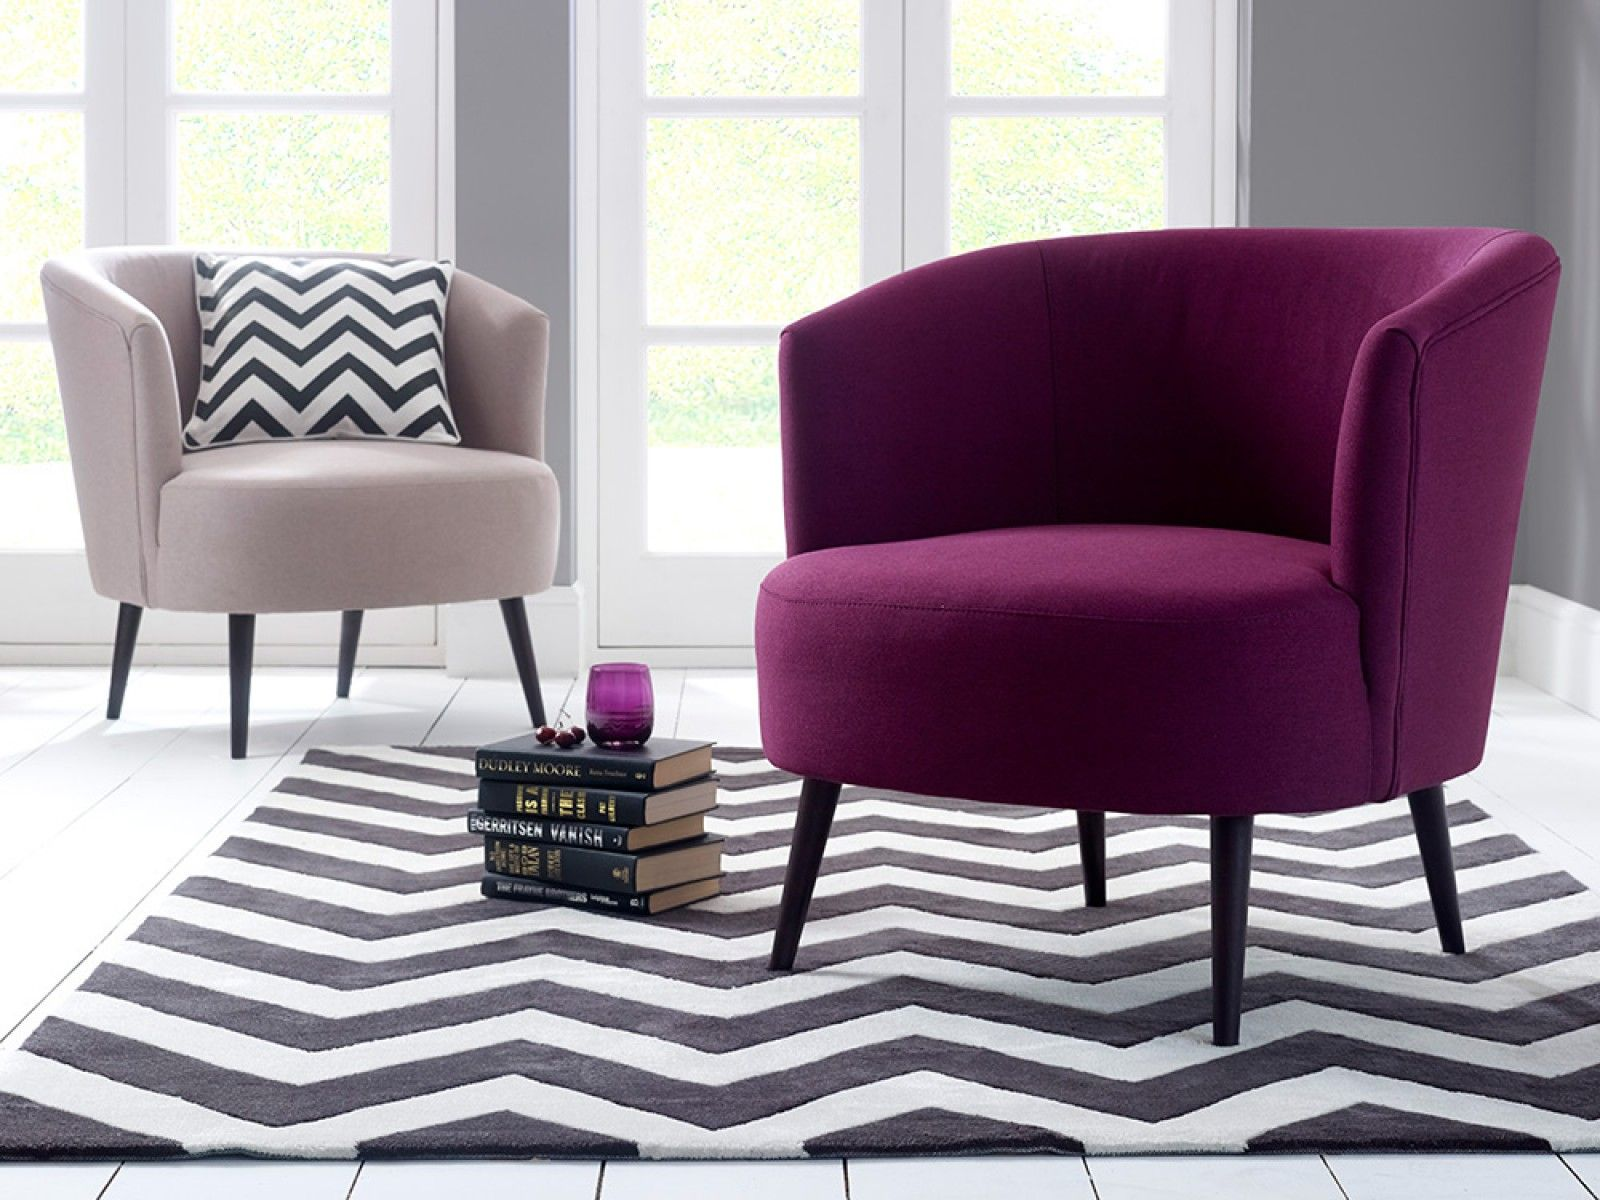 Accent Stuhl Schlafzimmer  Purple accent chair living room